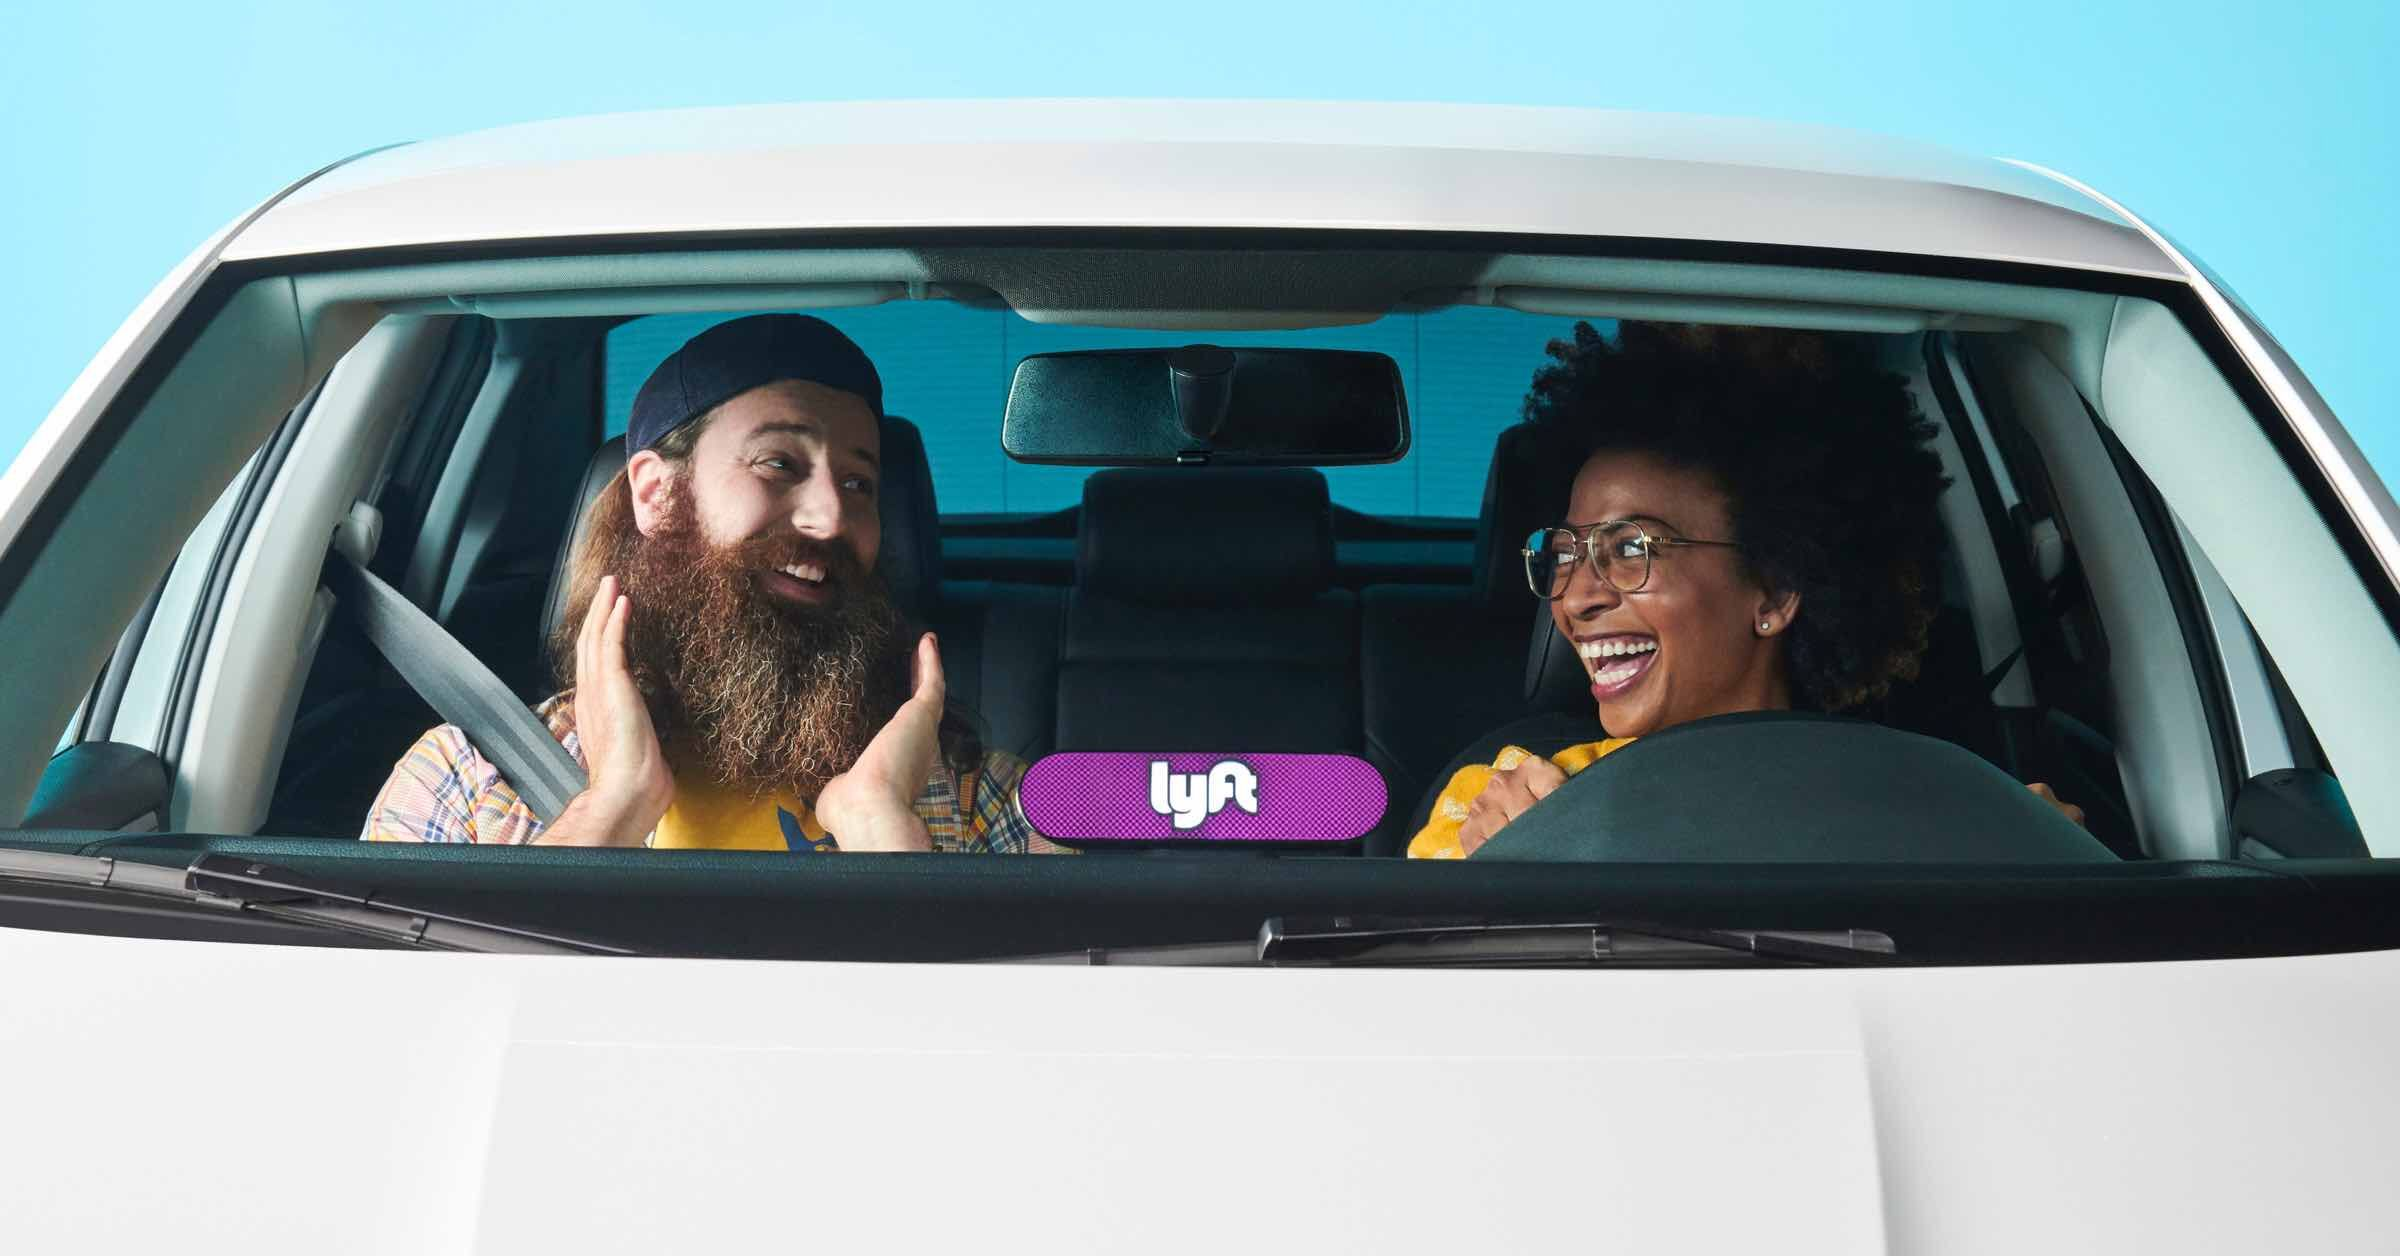 Drive with Lyft – Become a Driver | Lyft